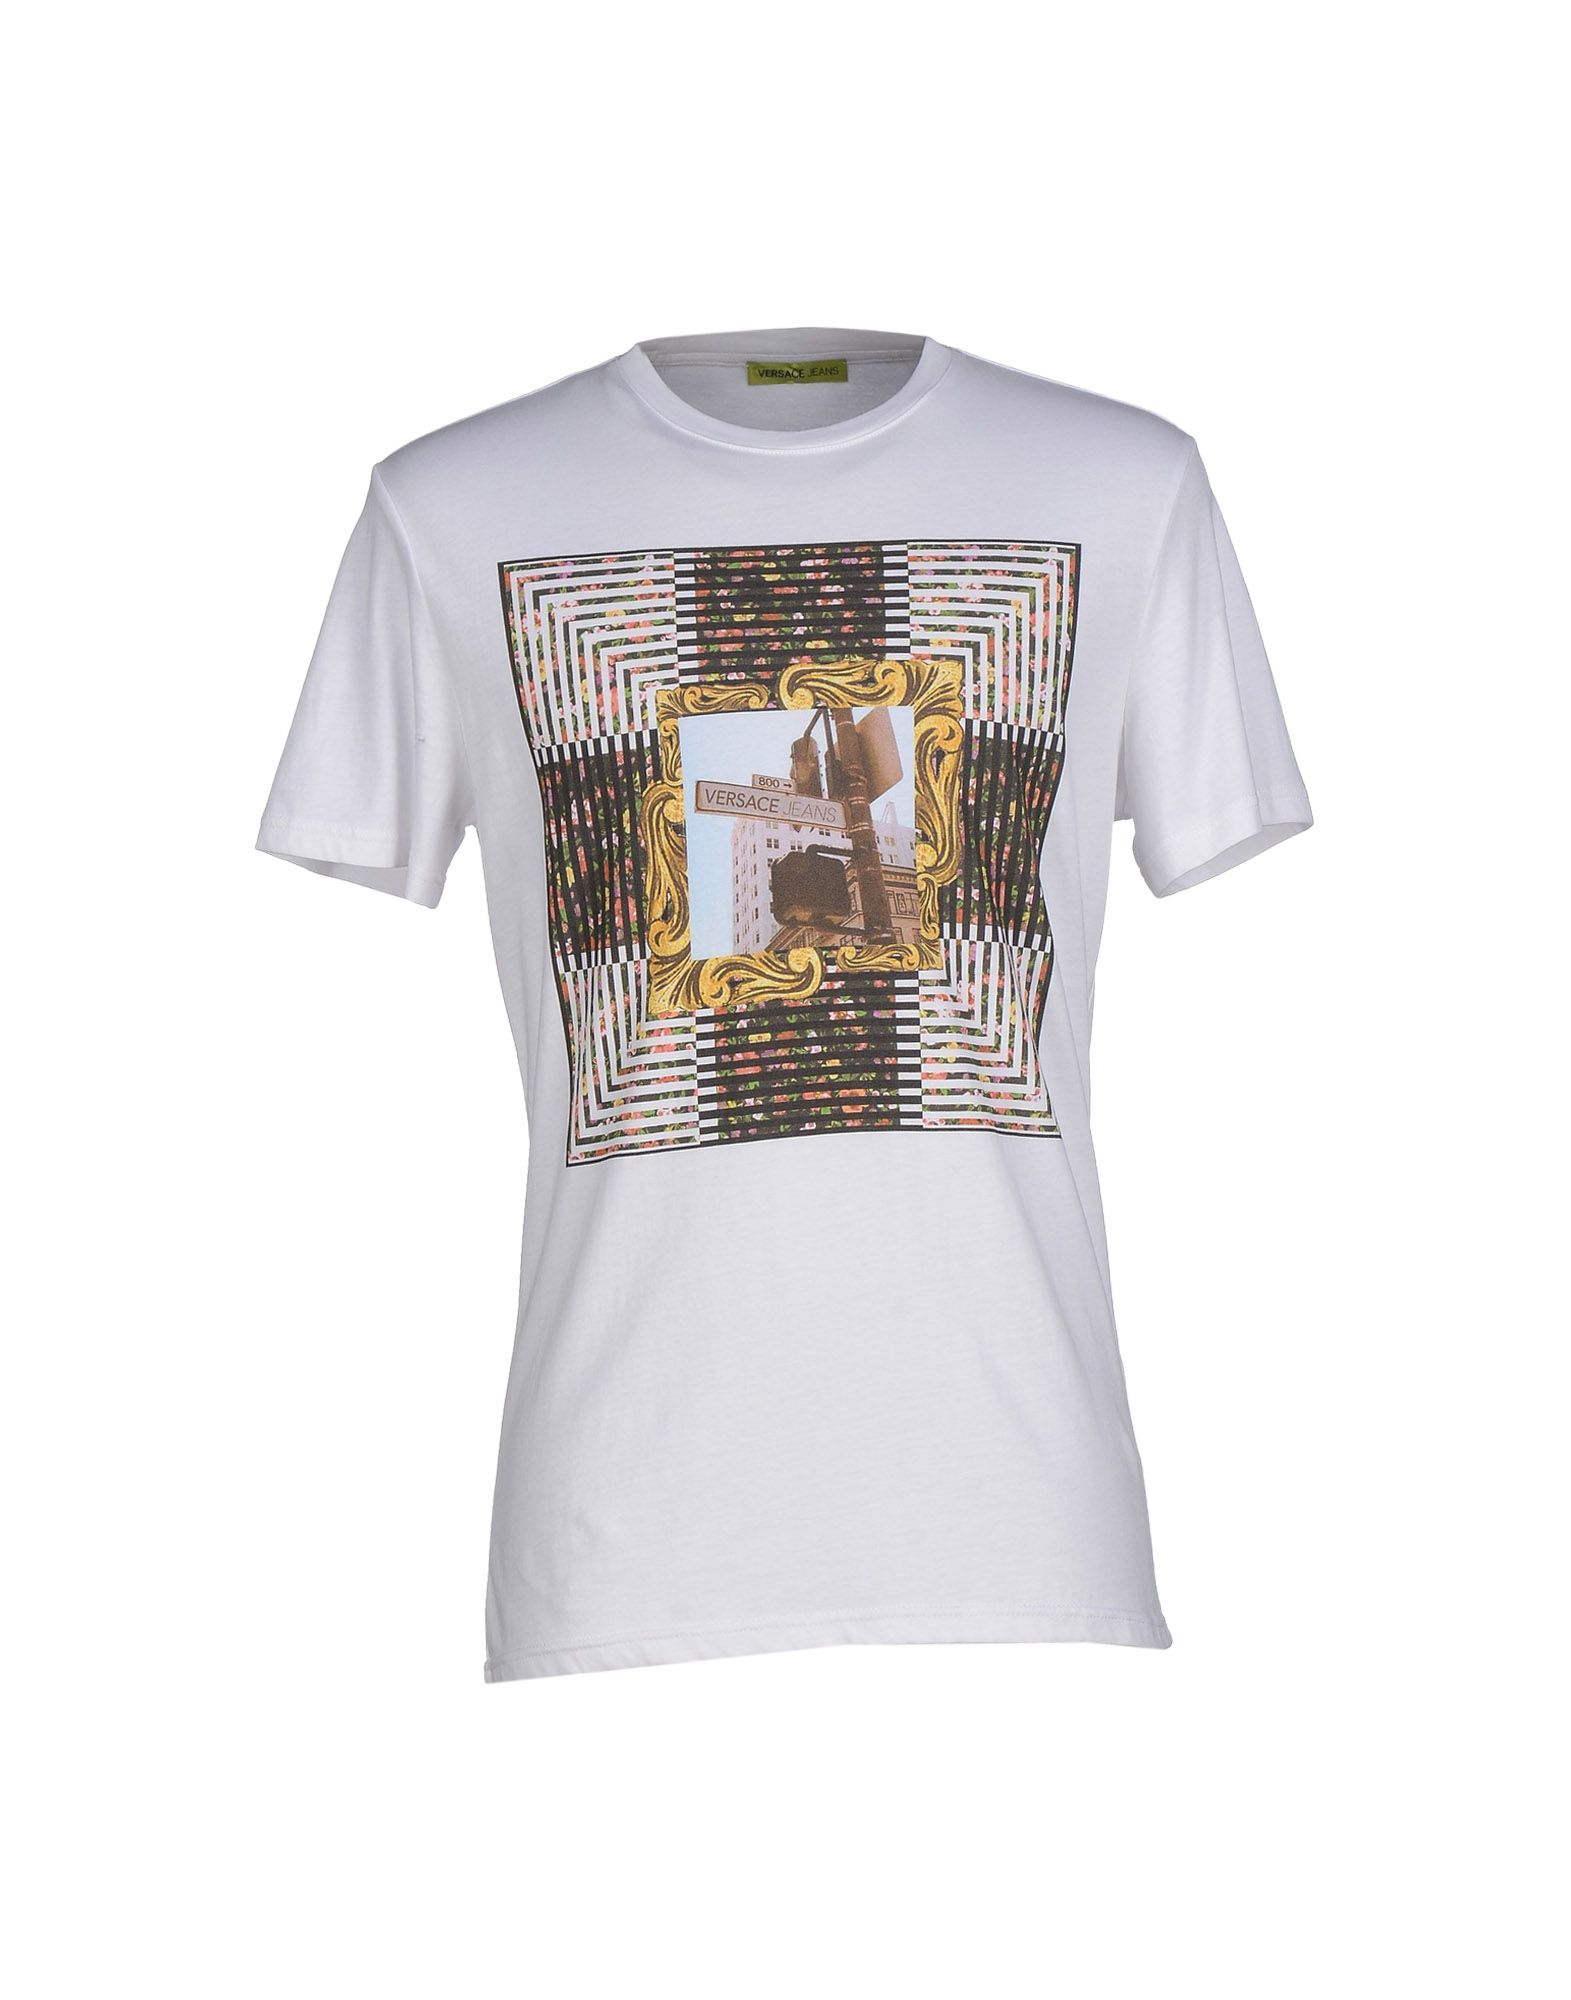 versace jeans t shirt in white for men lyst. Black Bedroom Furniture Sets. Home Design Ideas